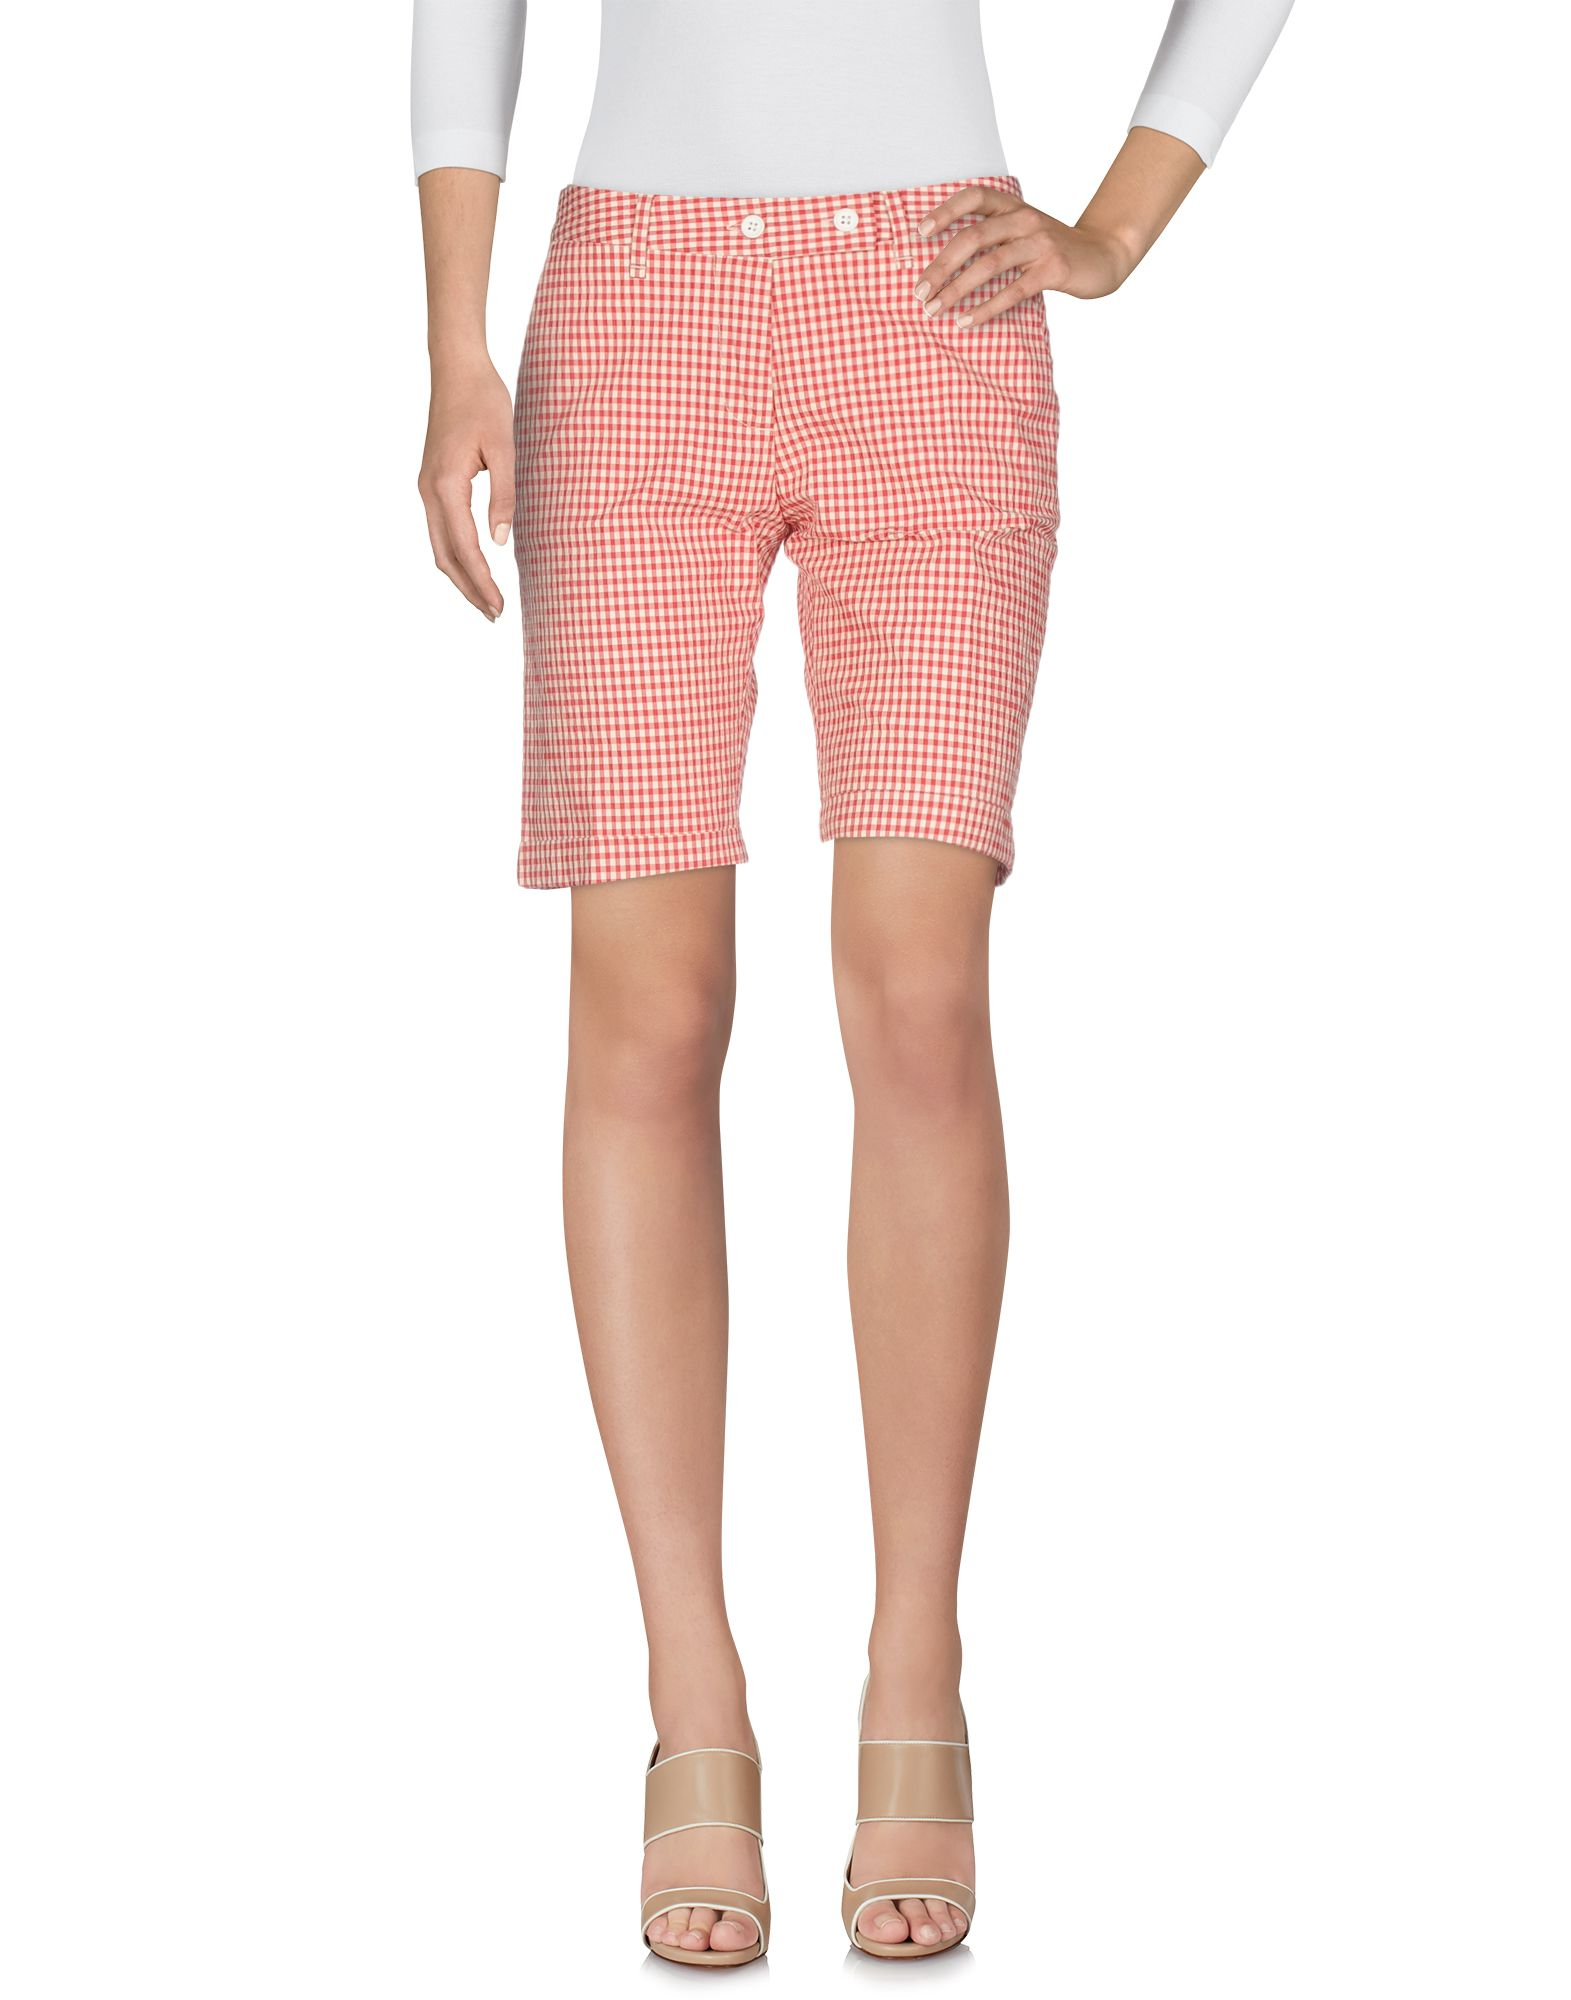 PERFECTION Shorts & Bermuda in Red